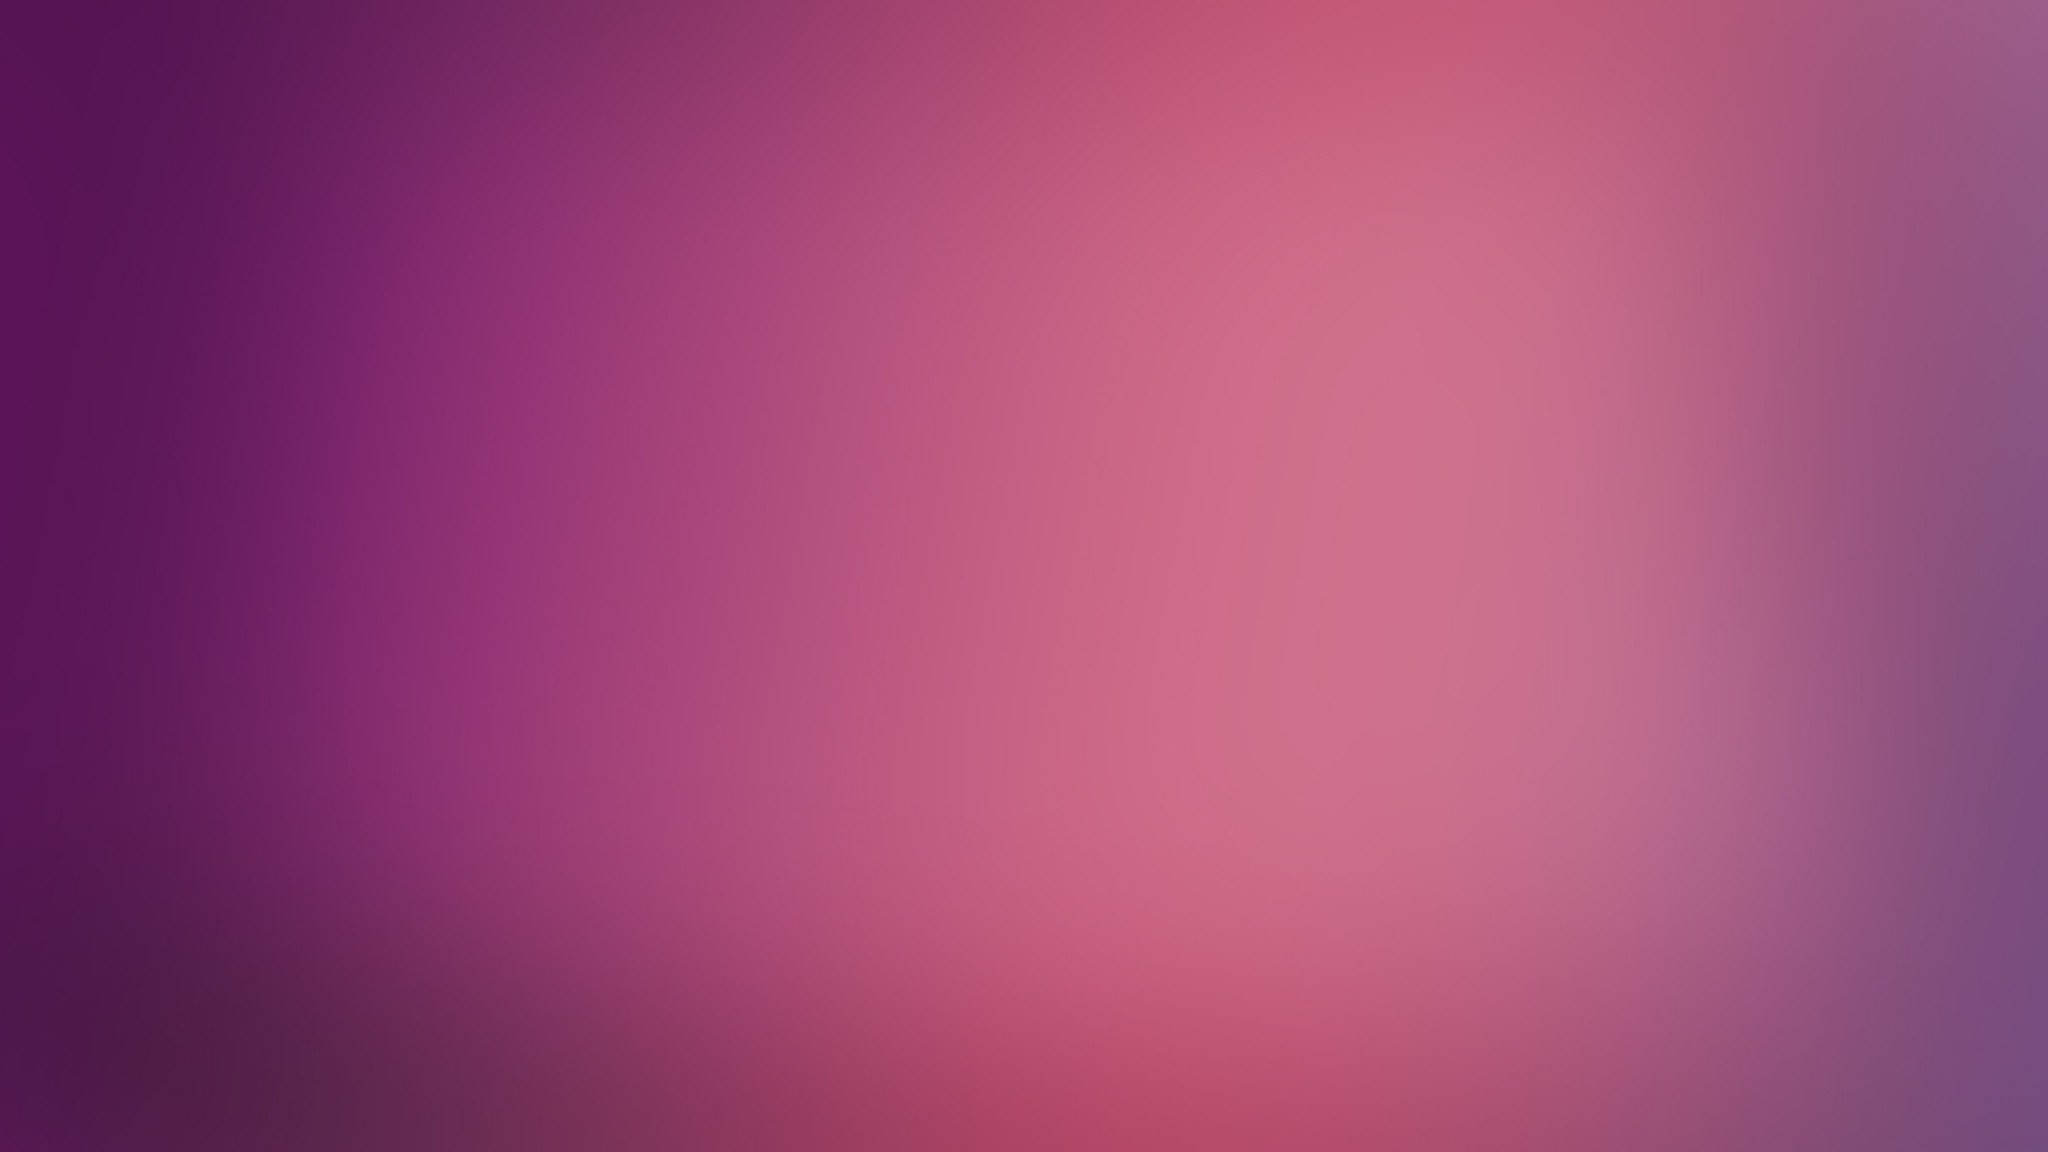 2560x1600 Light Purple Solid Color Wallpaper Hd Wallpapers